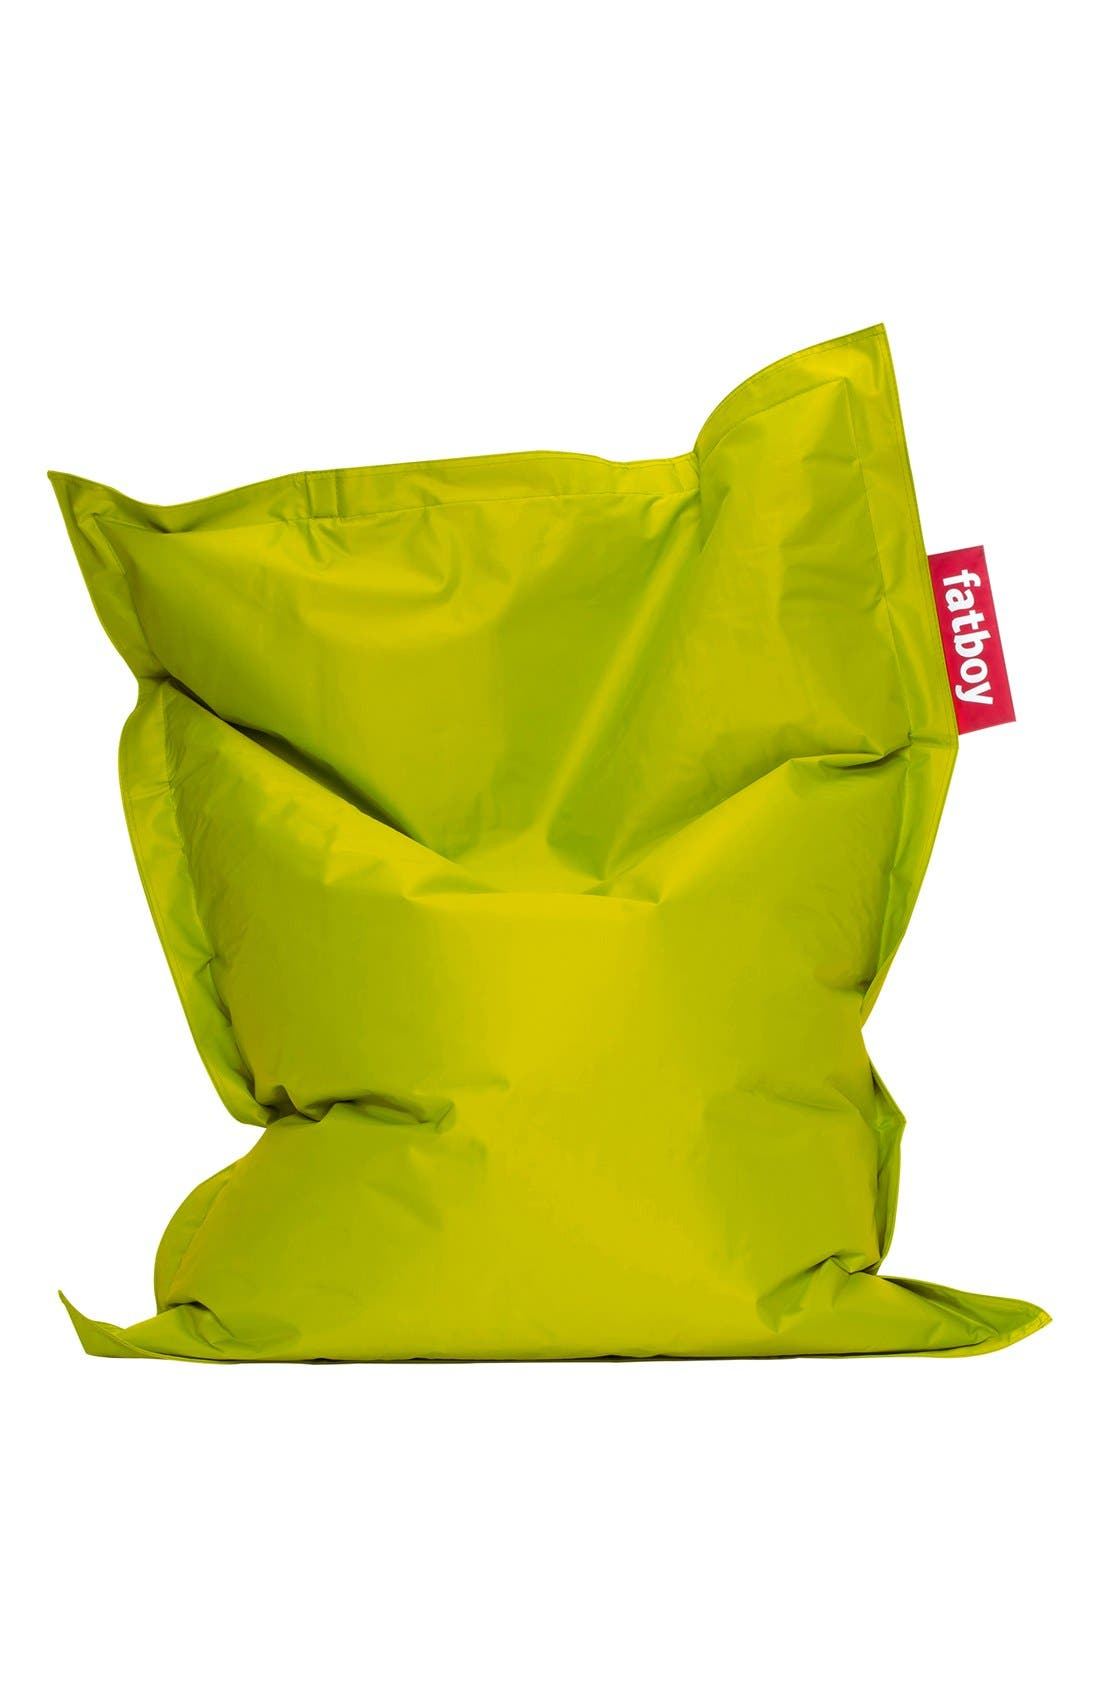 Fatboy 'Junior' Beanbag